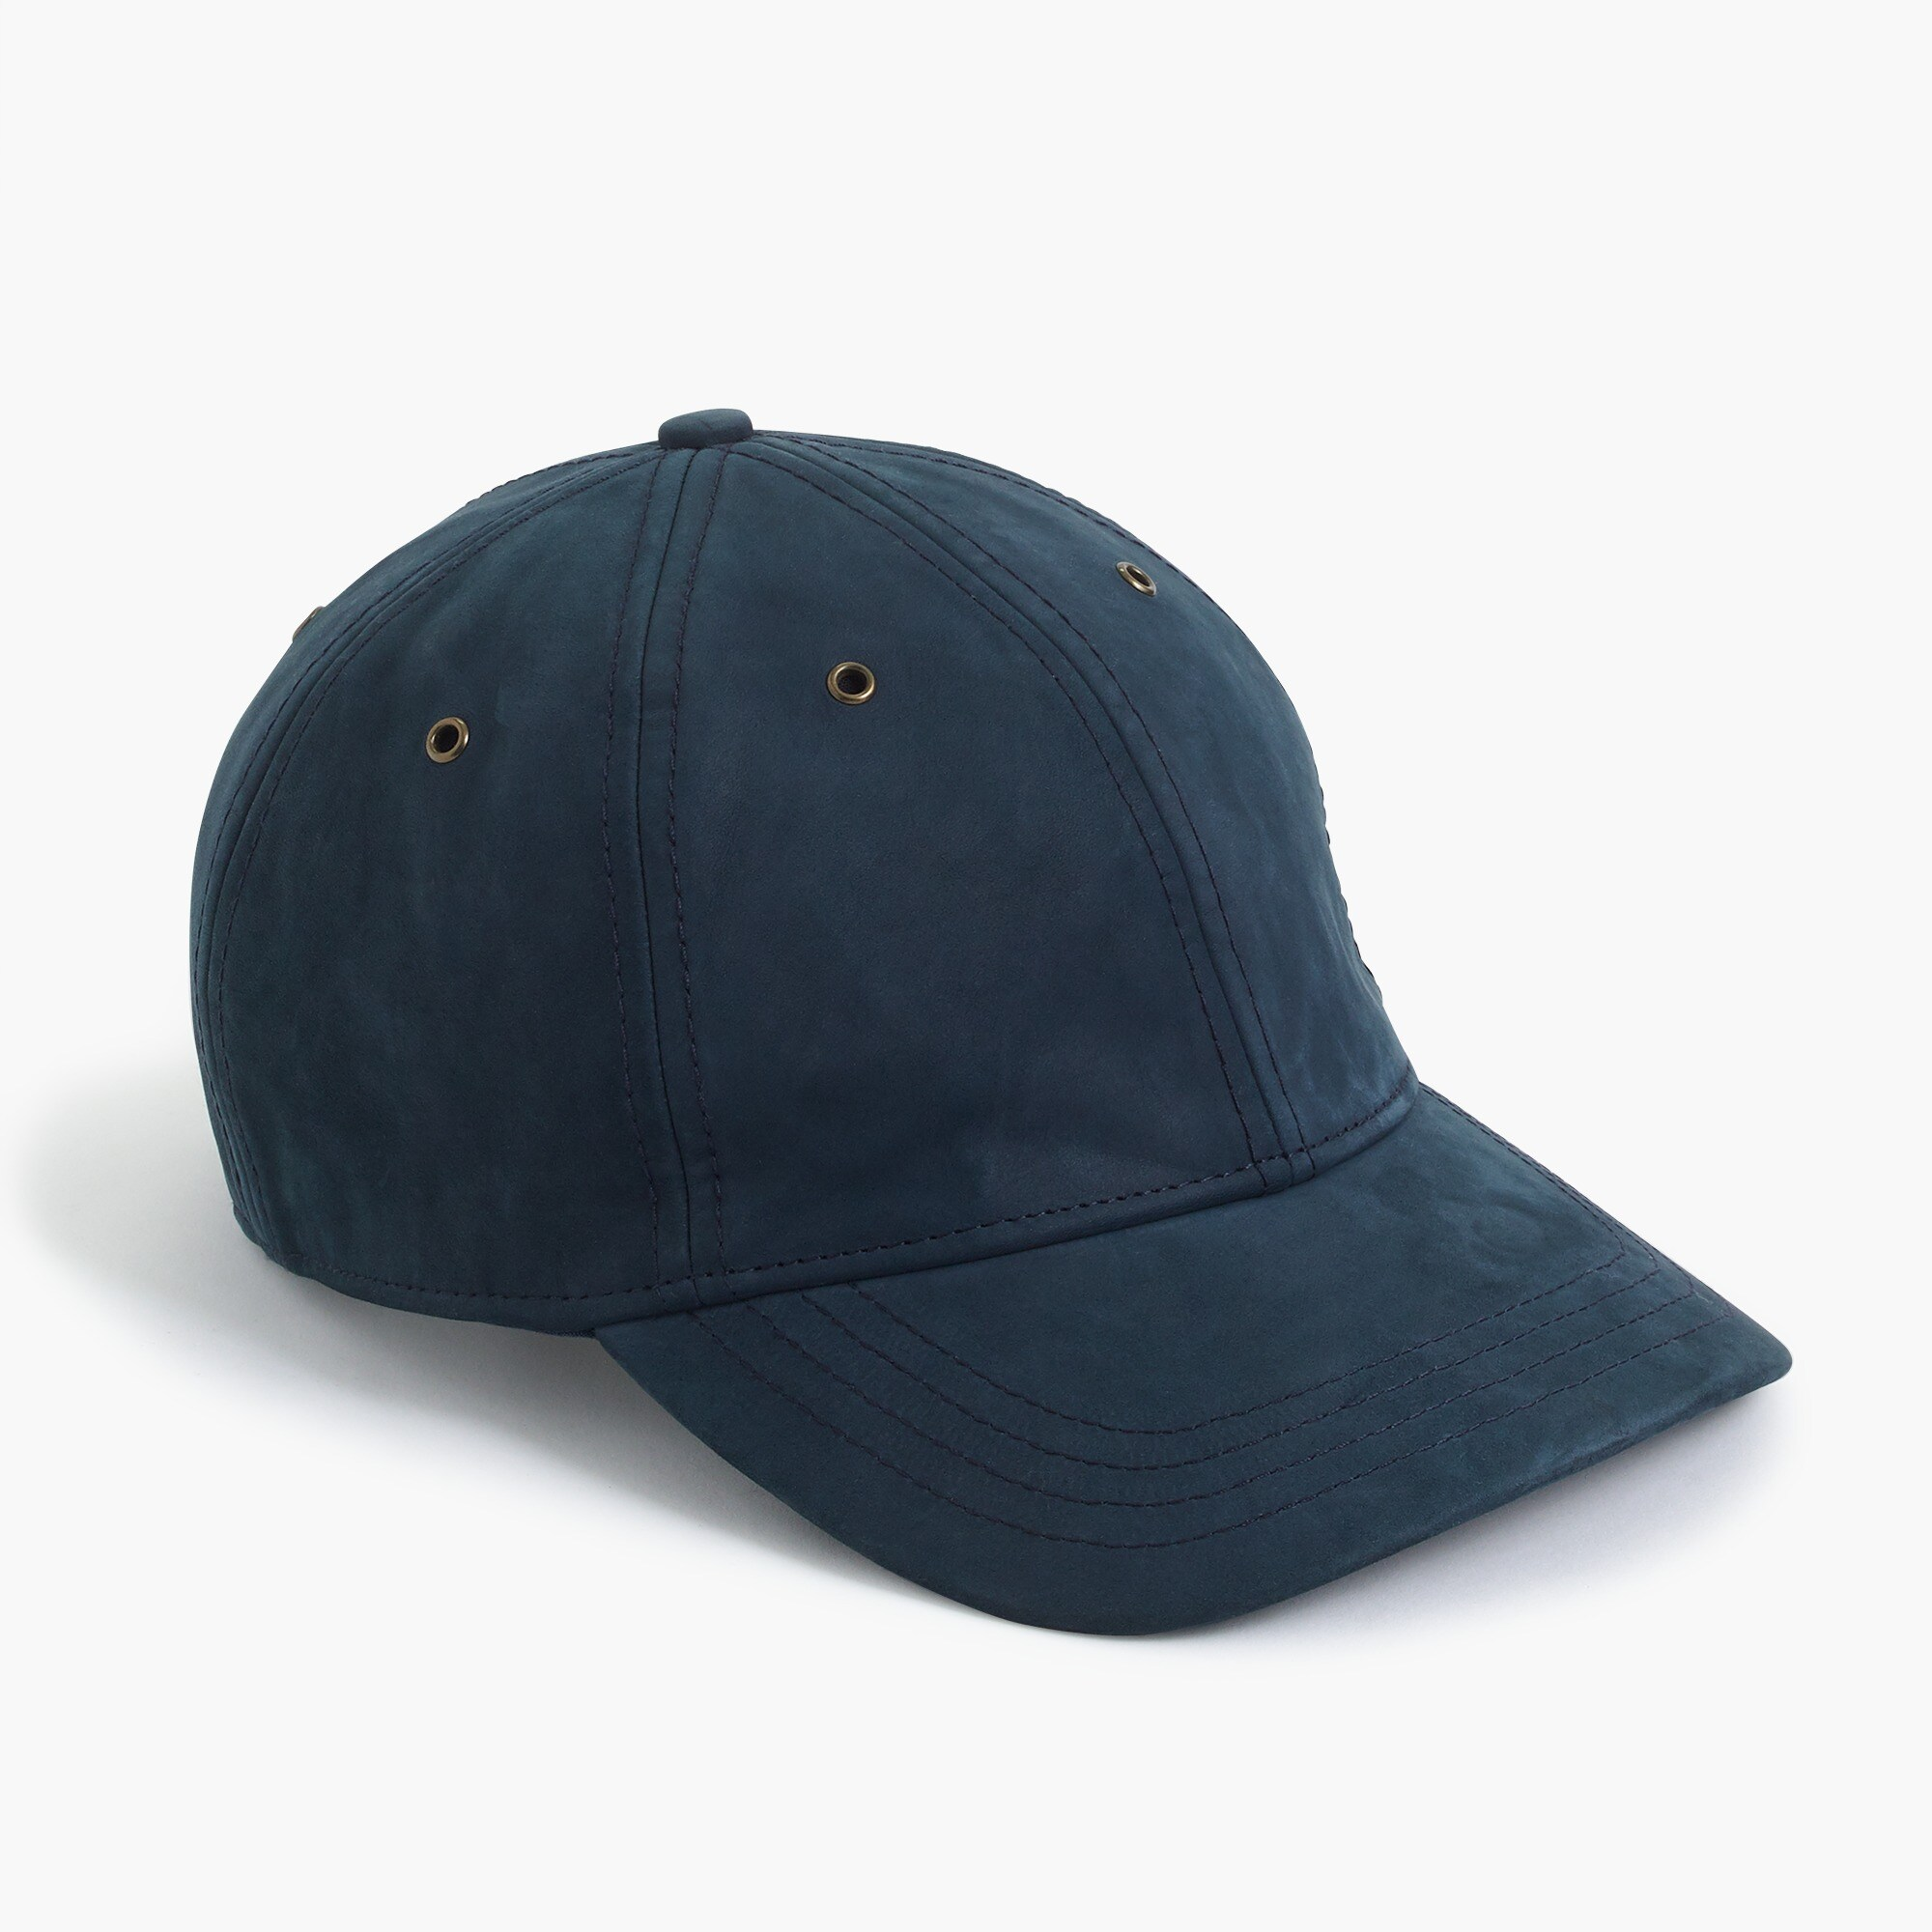 mens Nubuck ball cap